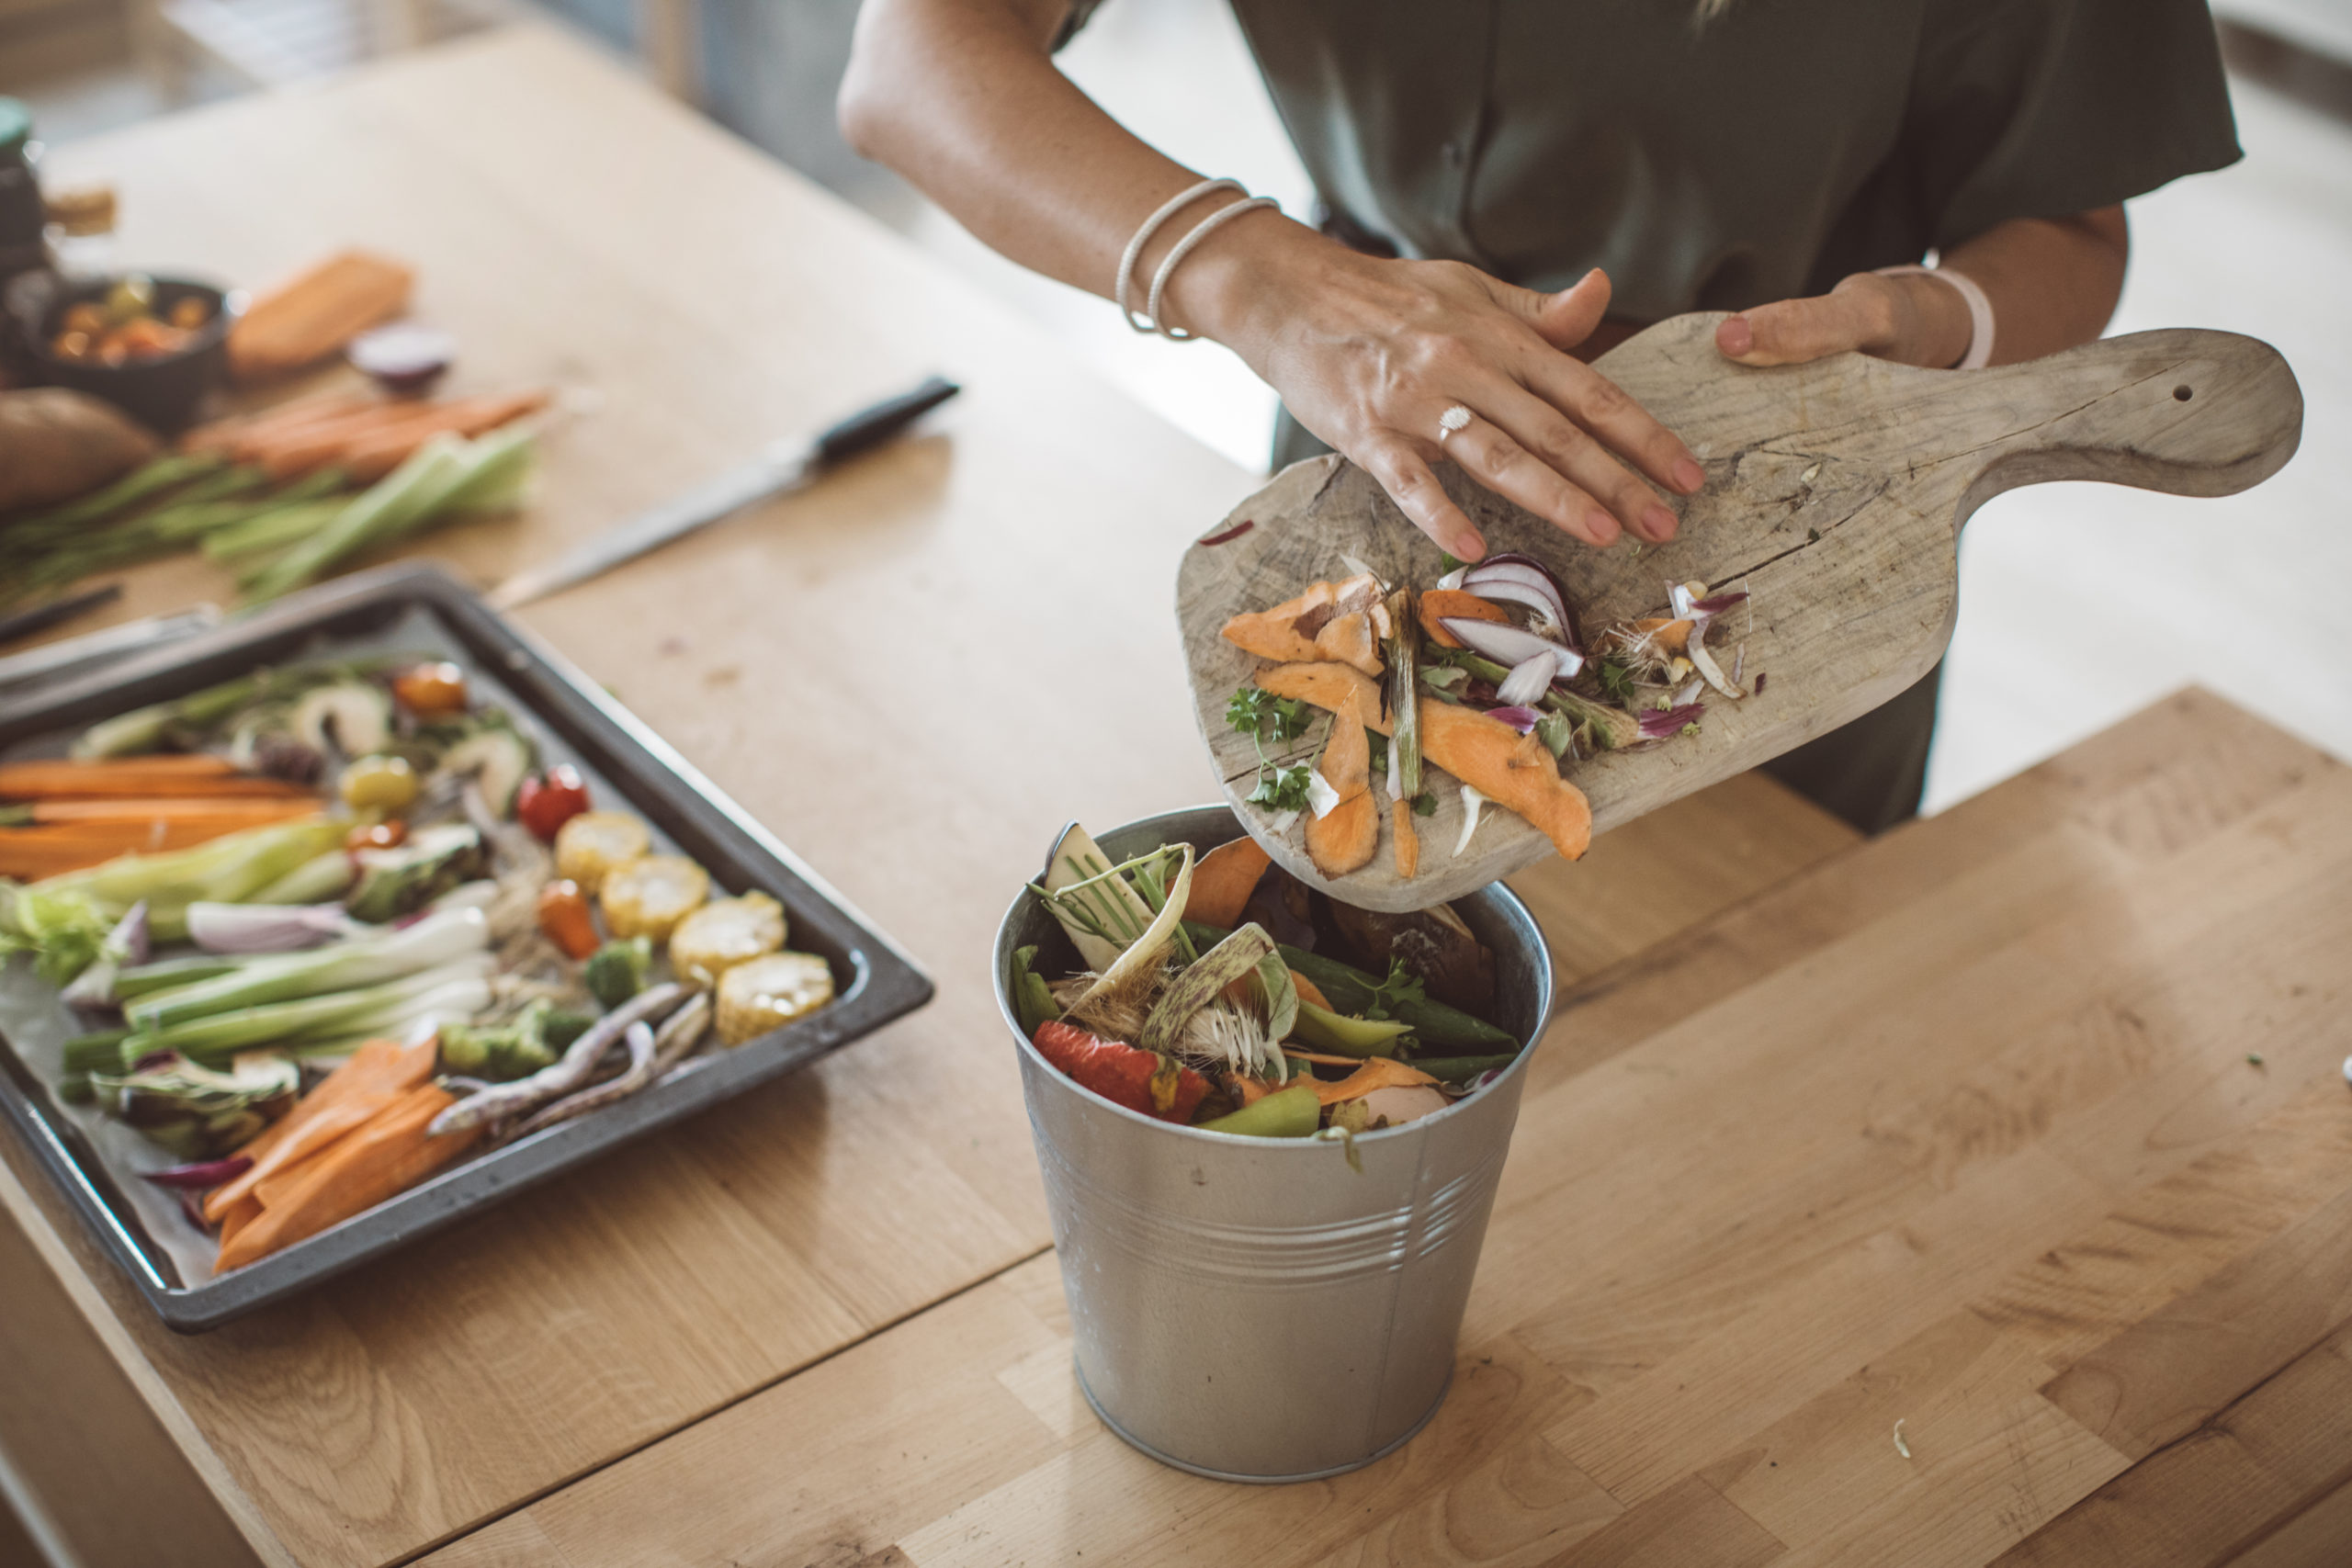 Food headed straight to the dustbin causes $1trn in economic losses each year